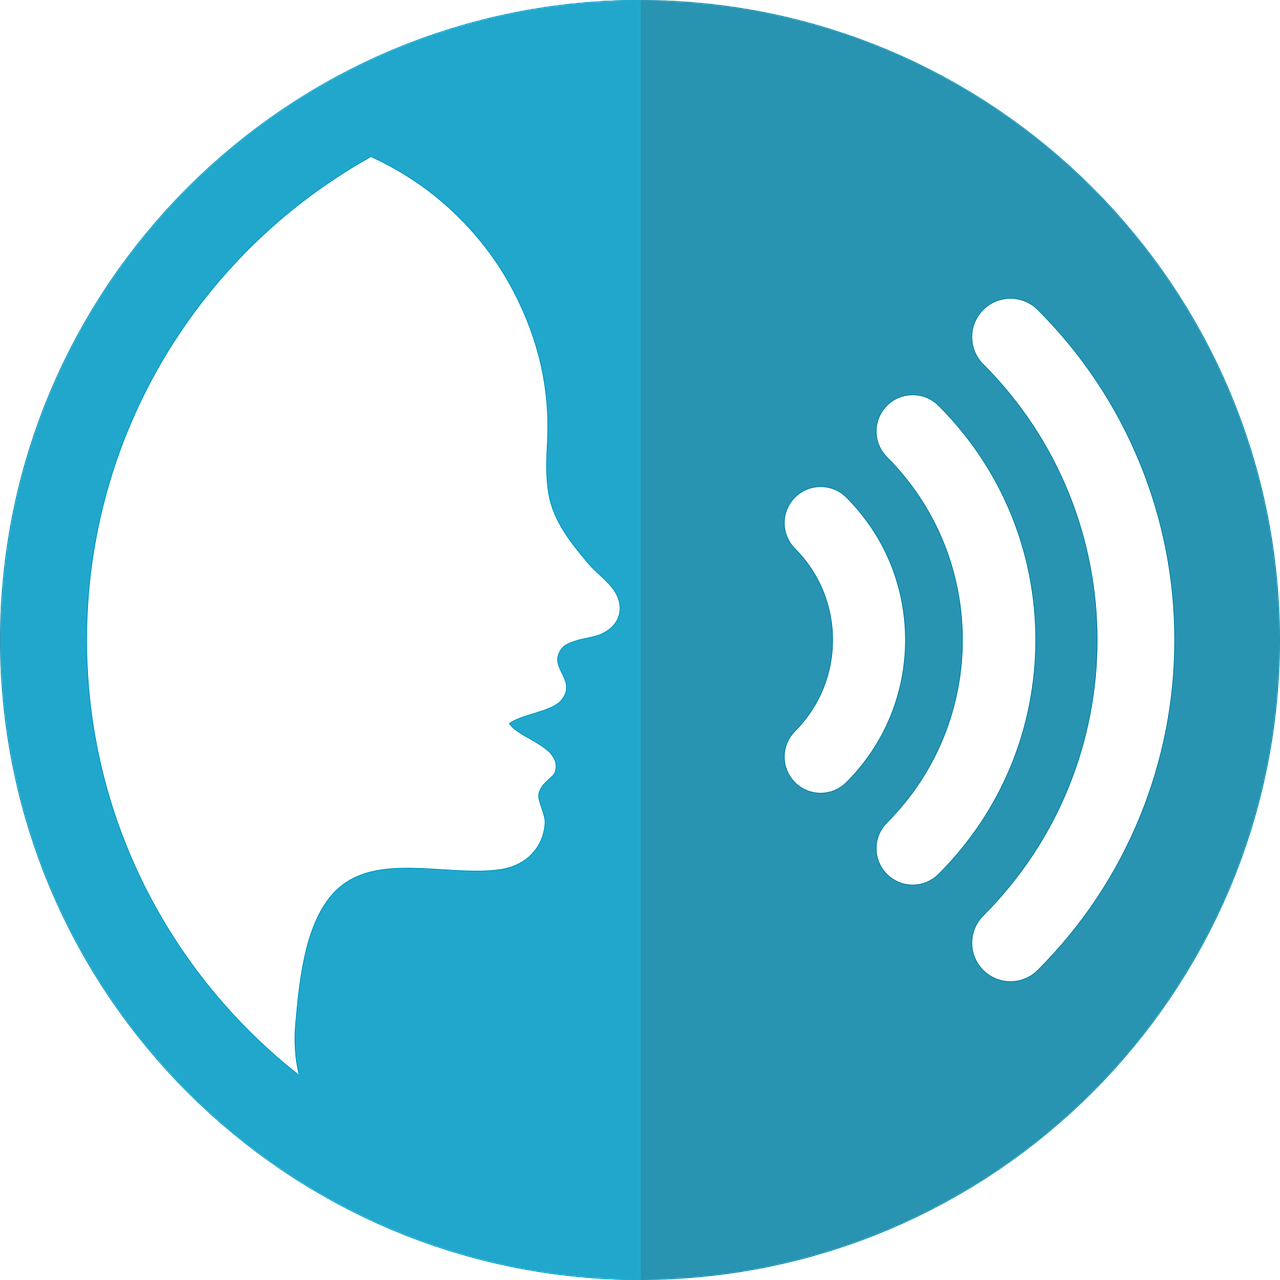 Voice Recording Tools The Voice Search Optimization Human Voice